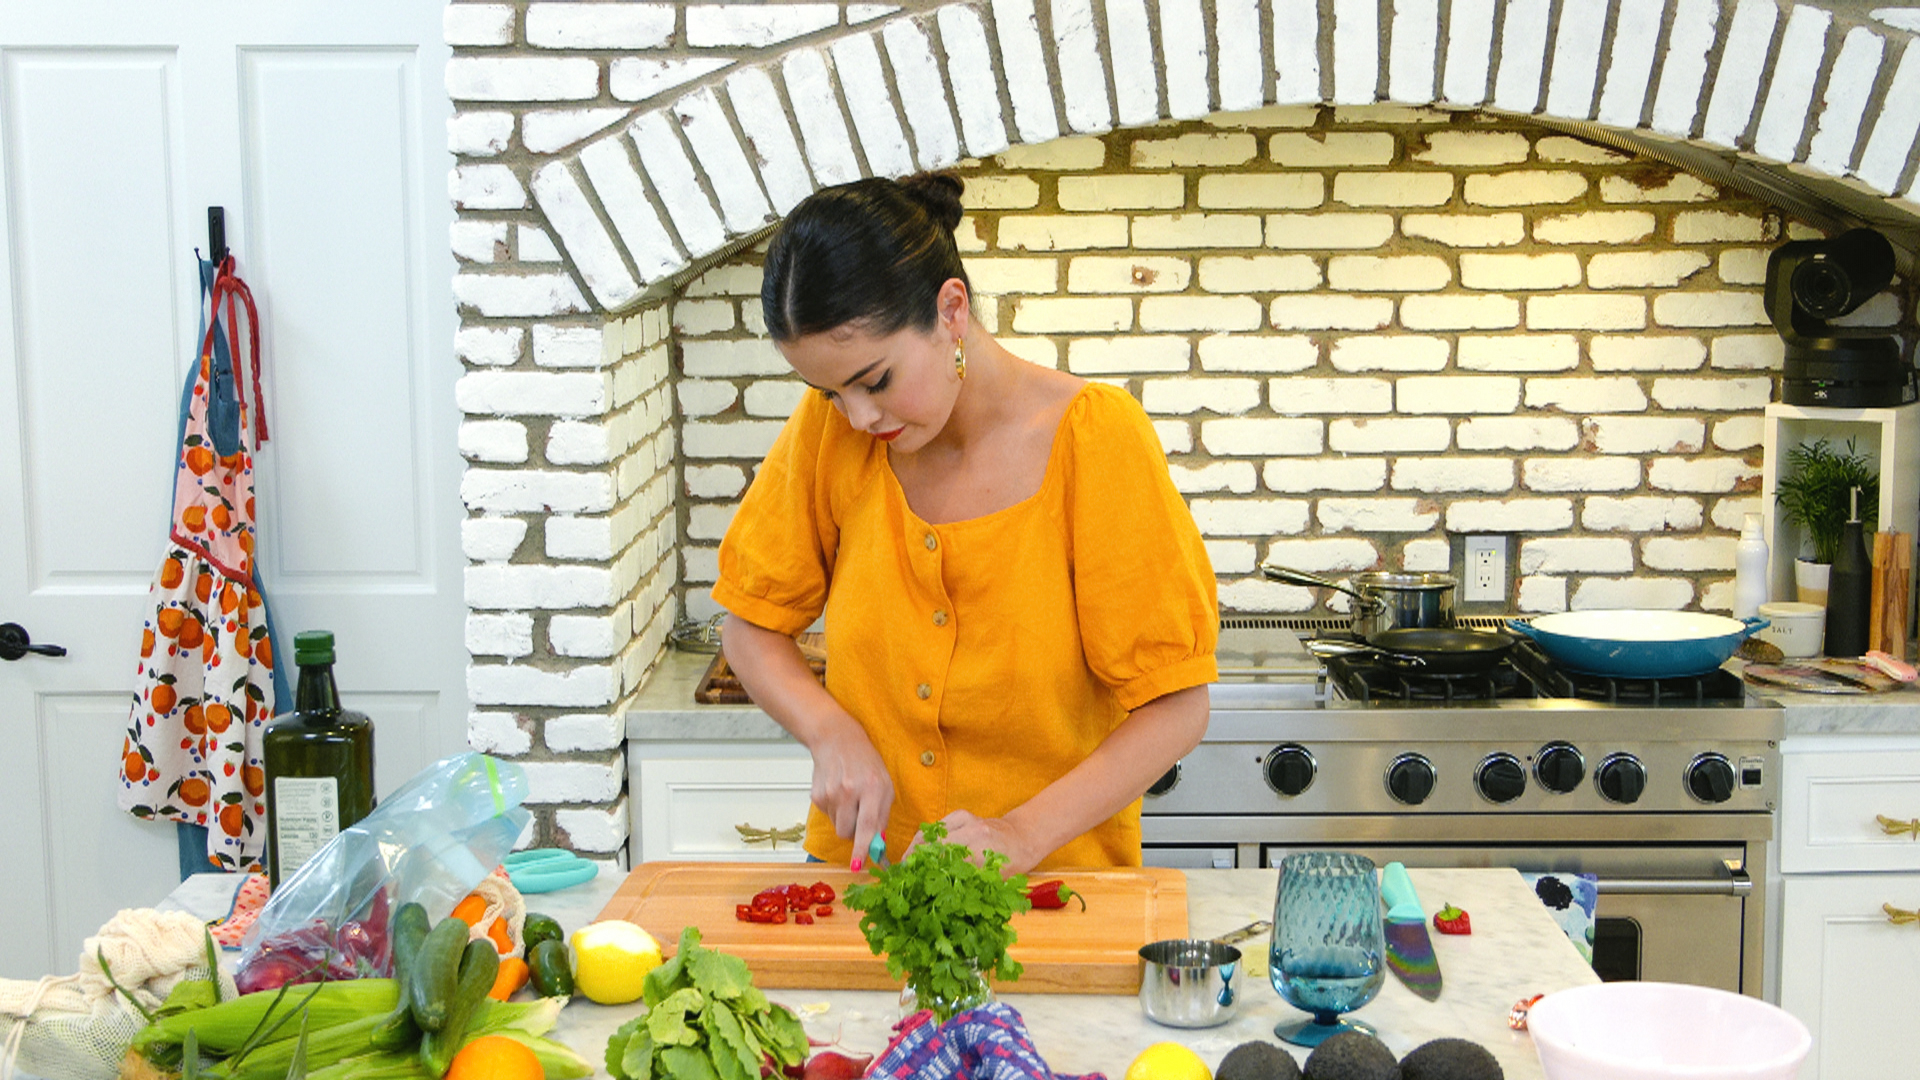 Selena Gomez chopping a pepper in her home kitchen.